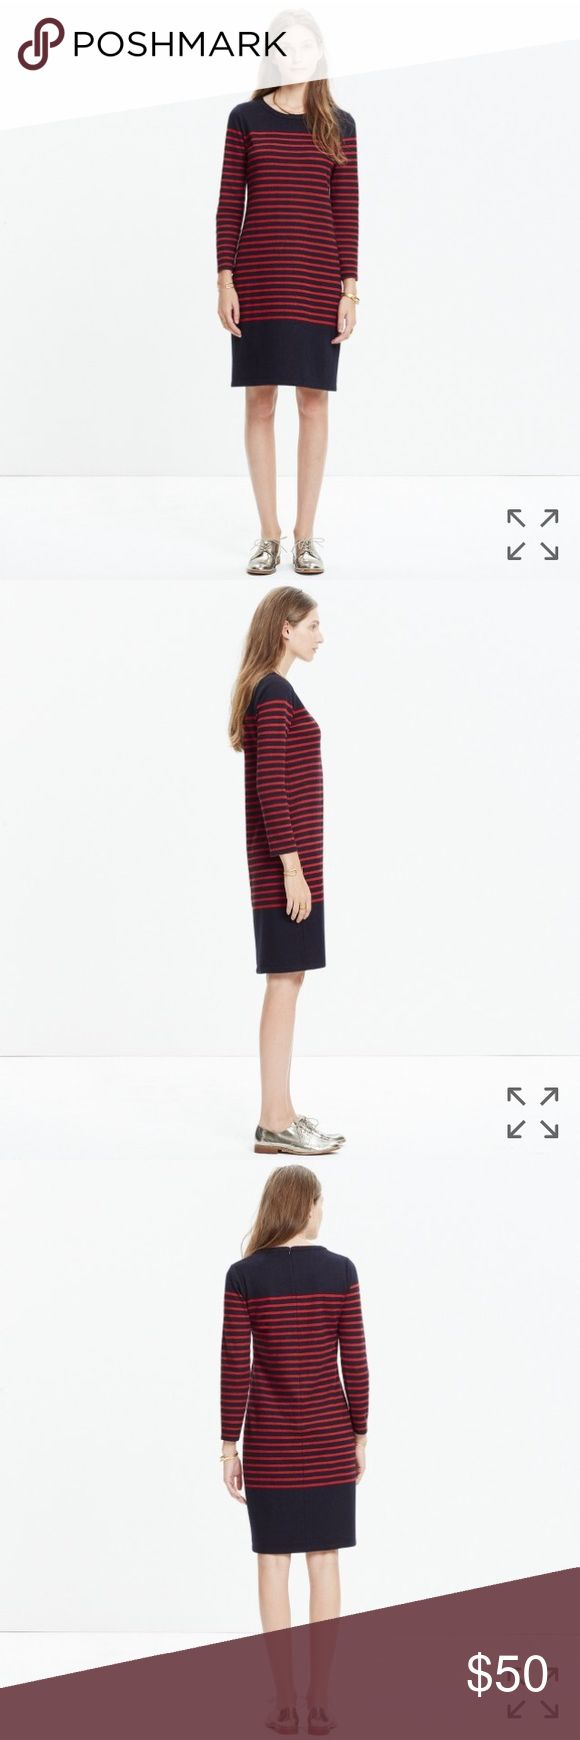 "Madewell Mariner Stripe Midi Dress New with tags! An easy midi dress with timeless nautical stripes. Pair with leather ankle boots or sporty kicks.    Nonwaisted. Falls 39 1/2"" from shoulder. Poly/wool. Dry clean. Madewell Dresses Midi"